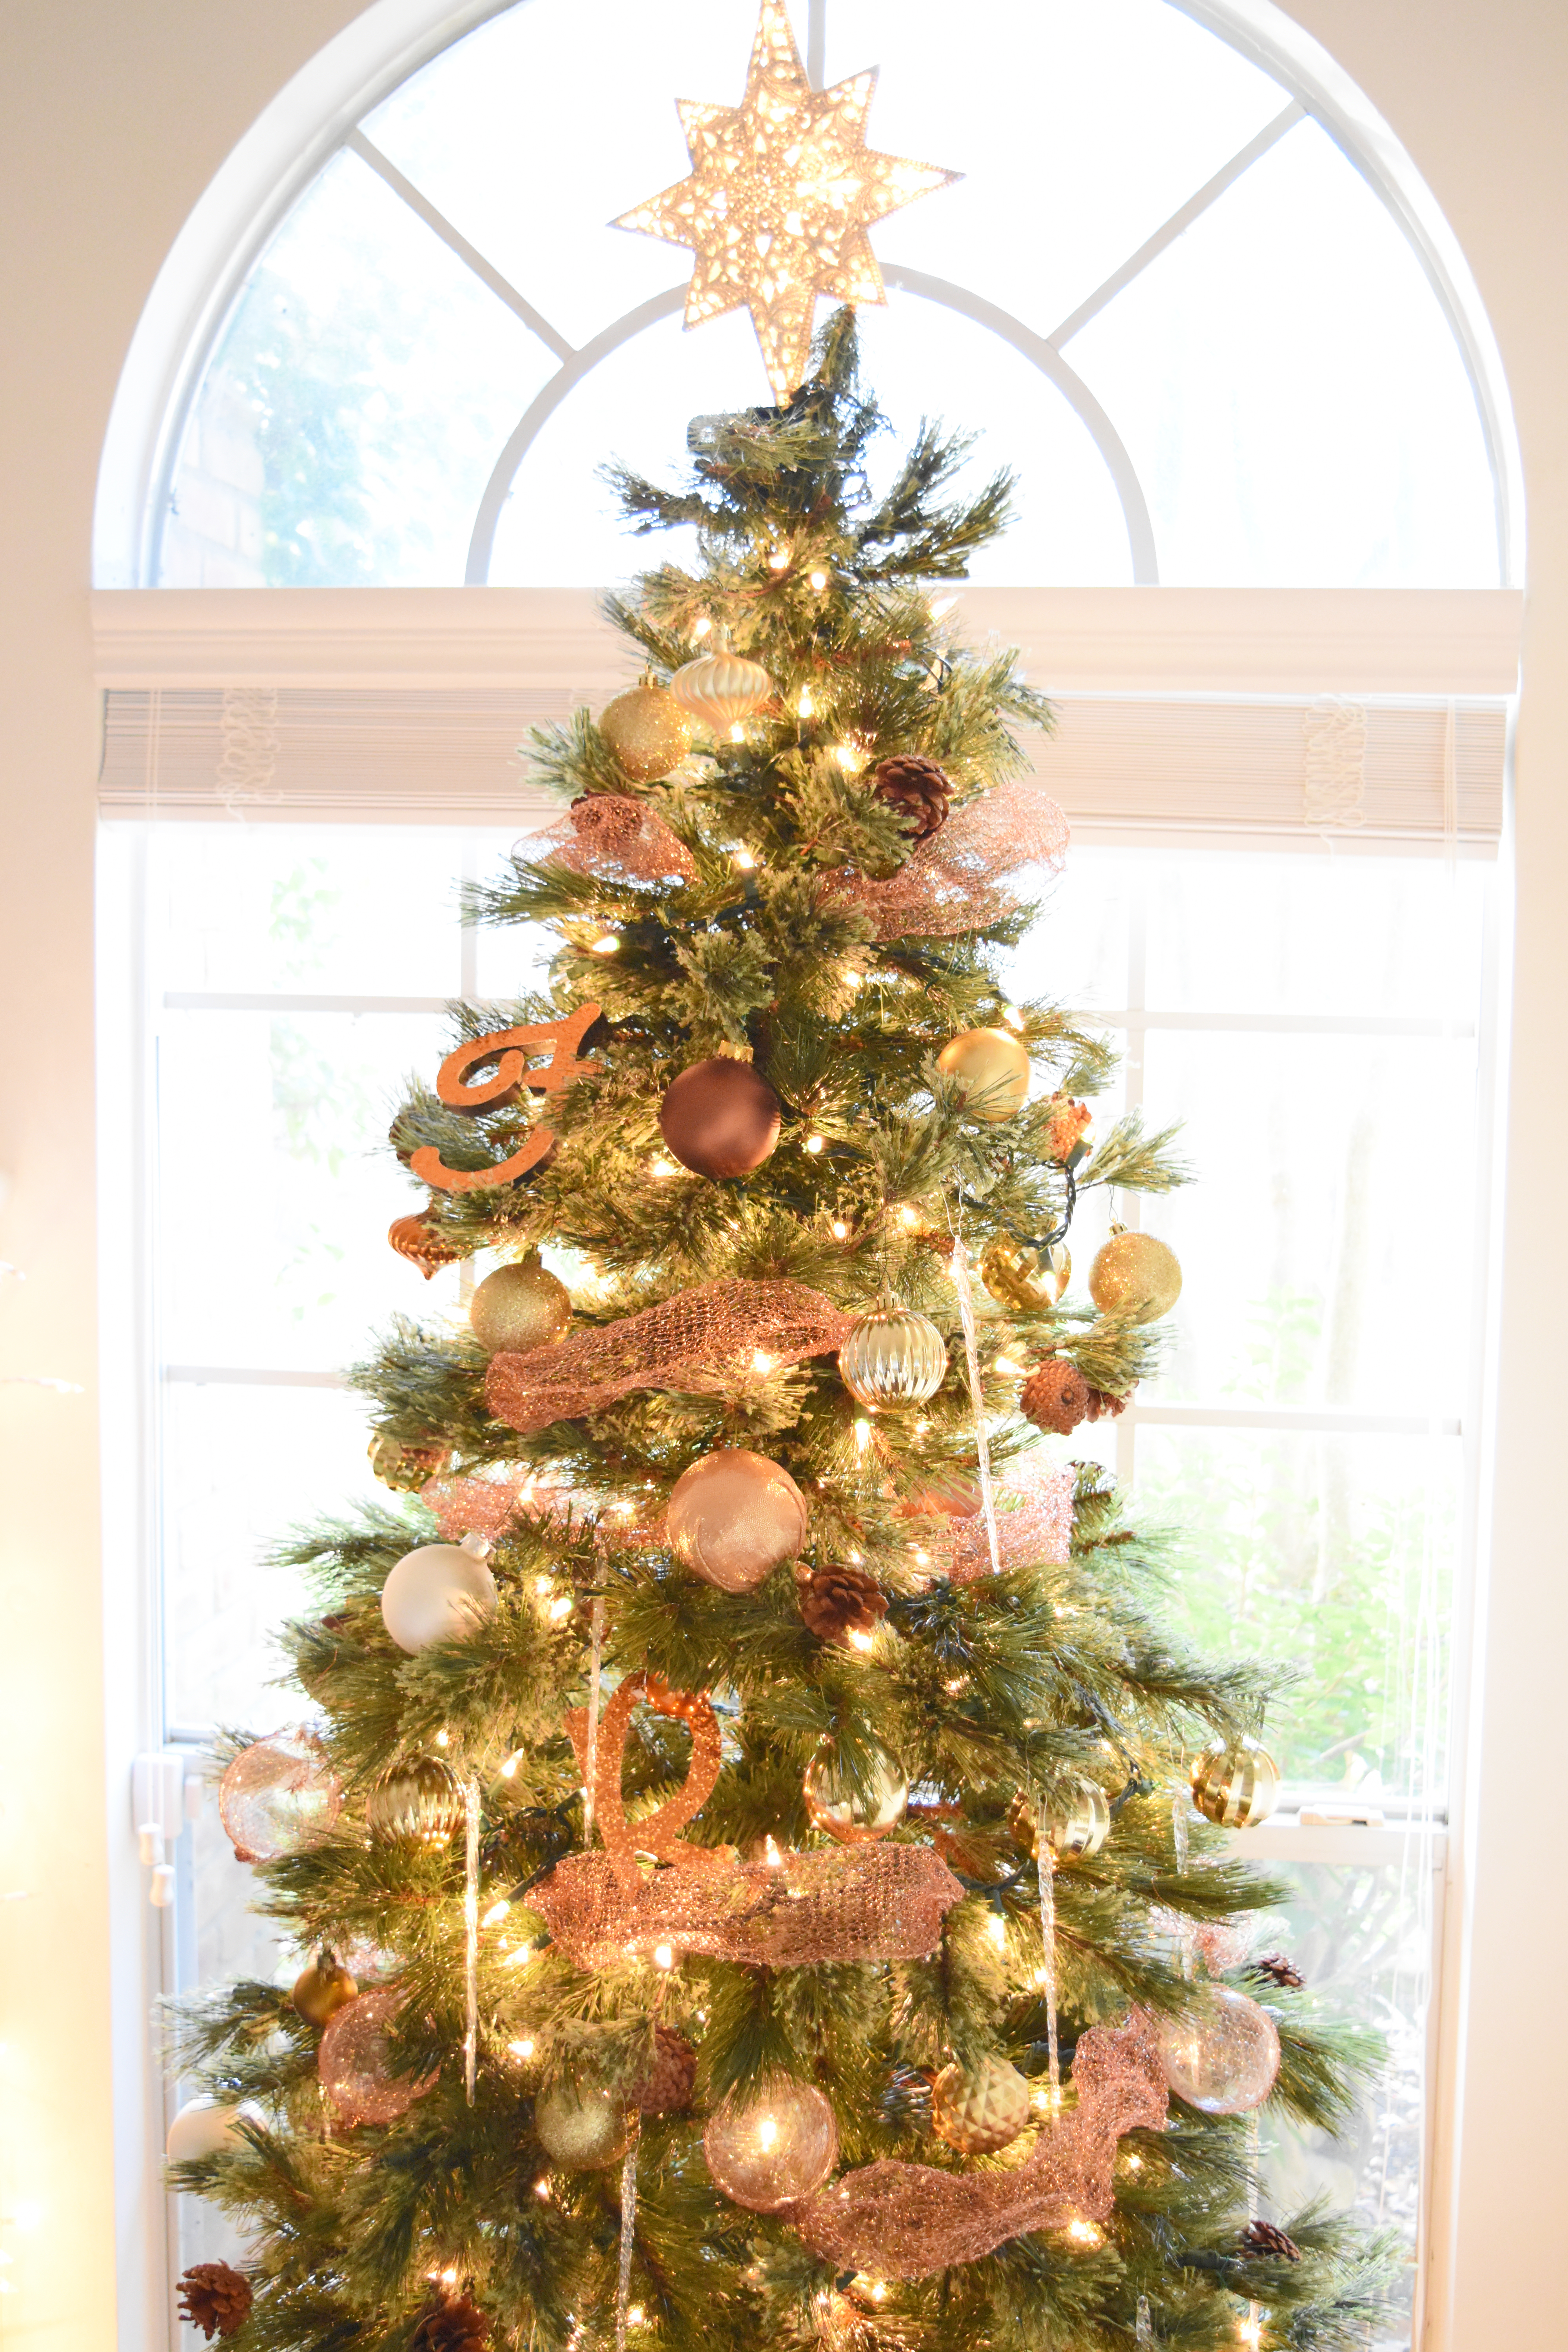 Christmas Tree With Mesh.Diy Copper Mesh Garland For Your Christmas Tree Once Again